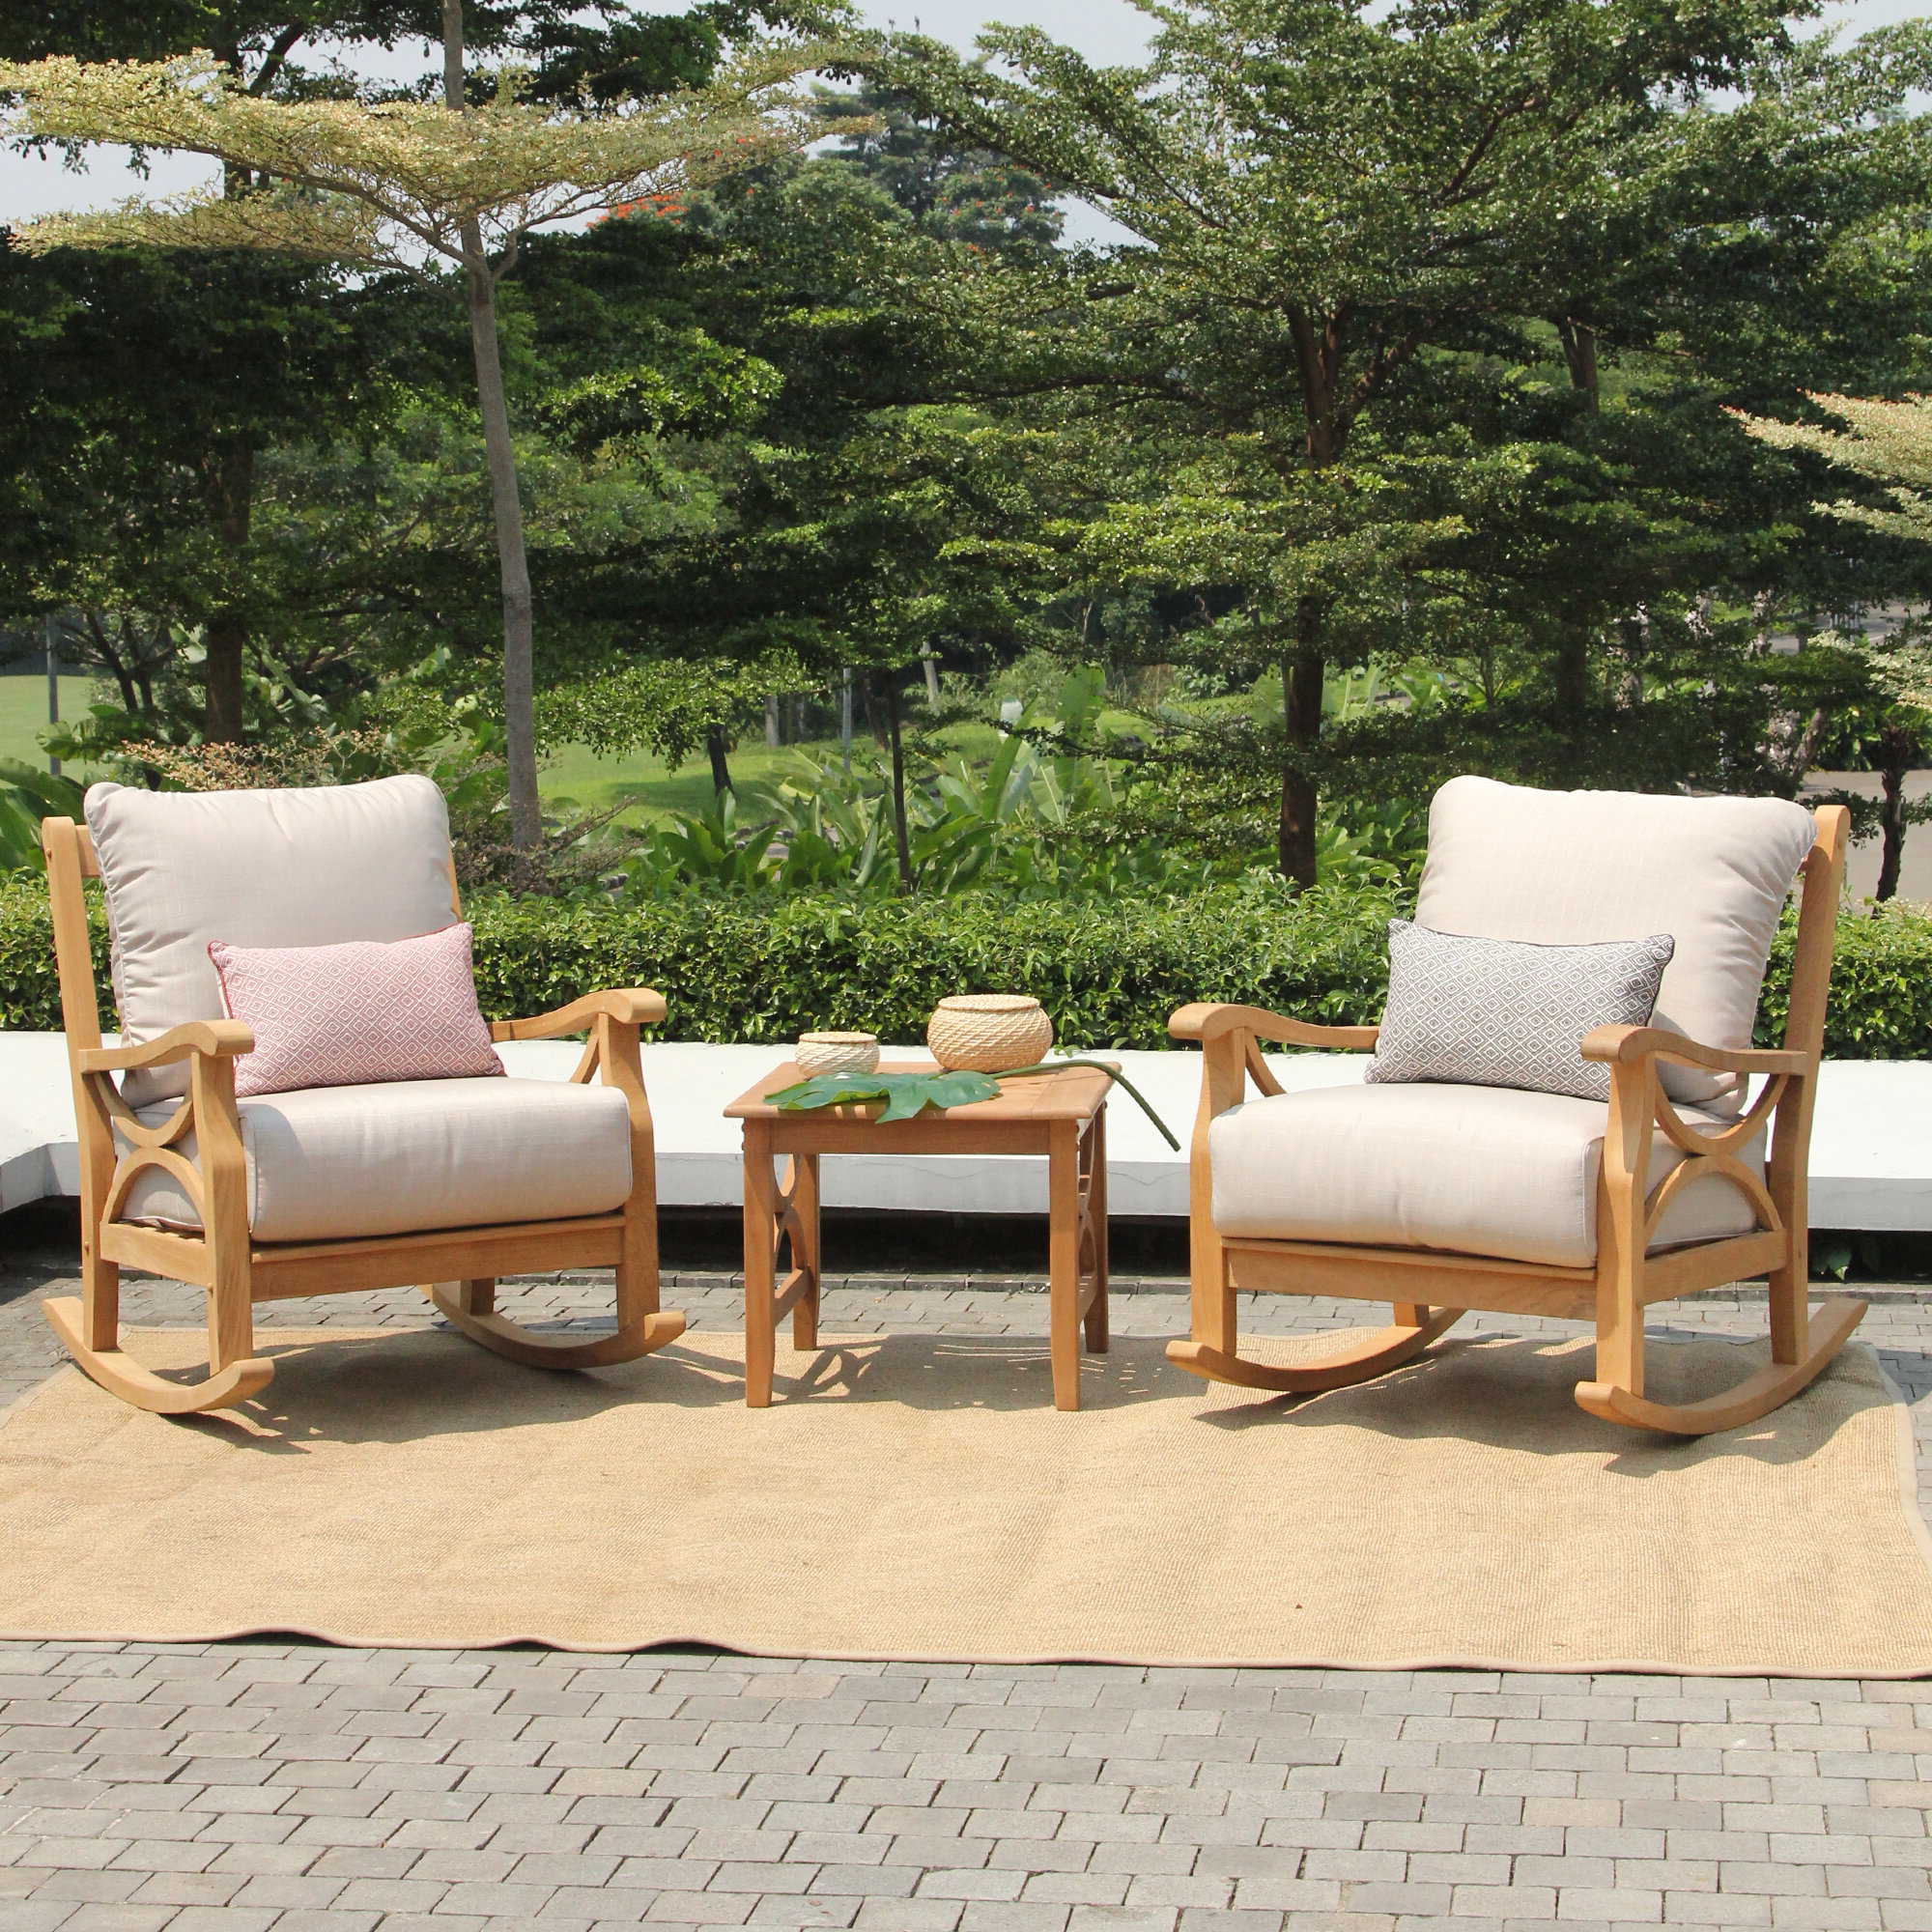 Best And Newest Brunswick 3 Piece Teak Seating Group With Cushions With Brunswick Teak Loveseats With Cushions (Gallery 14 of 20)